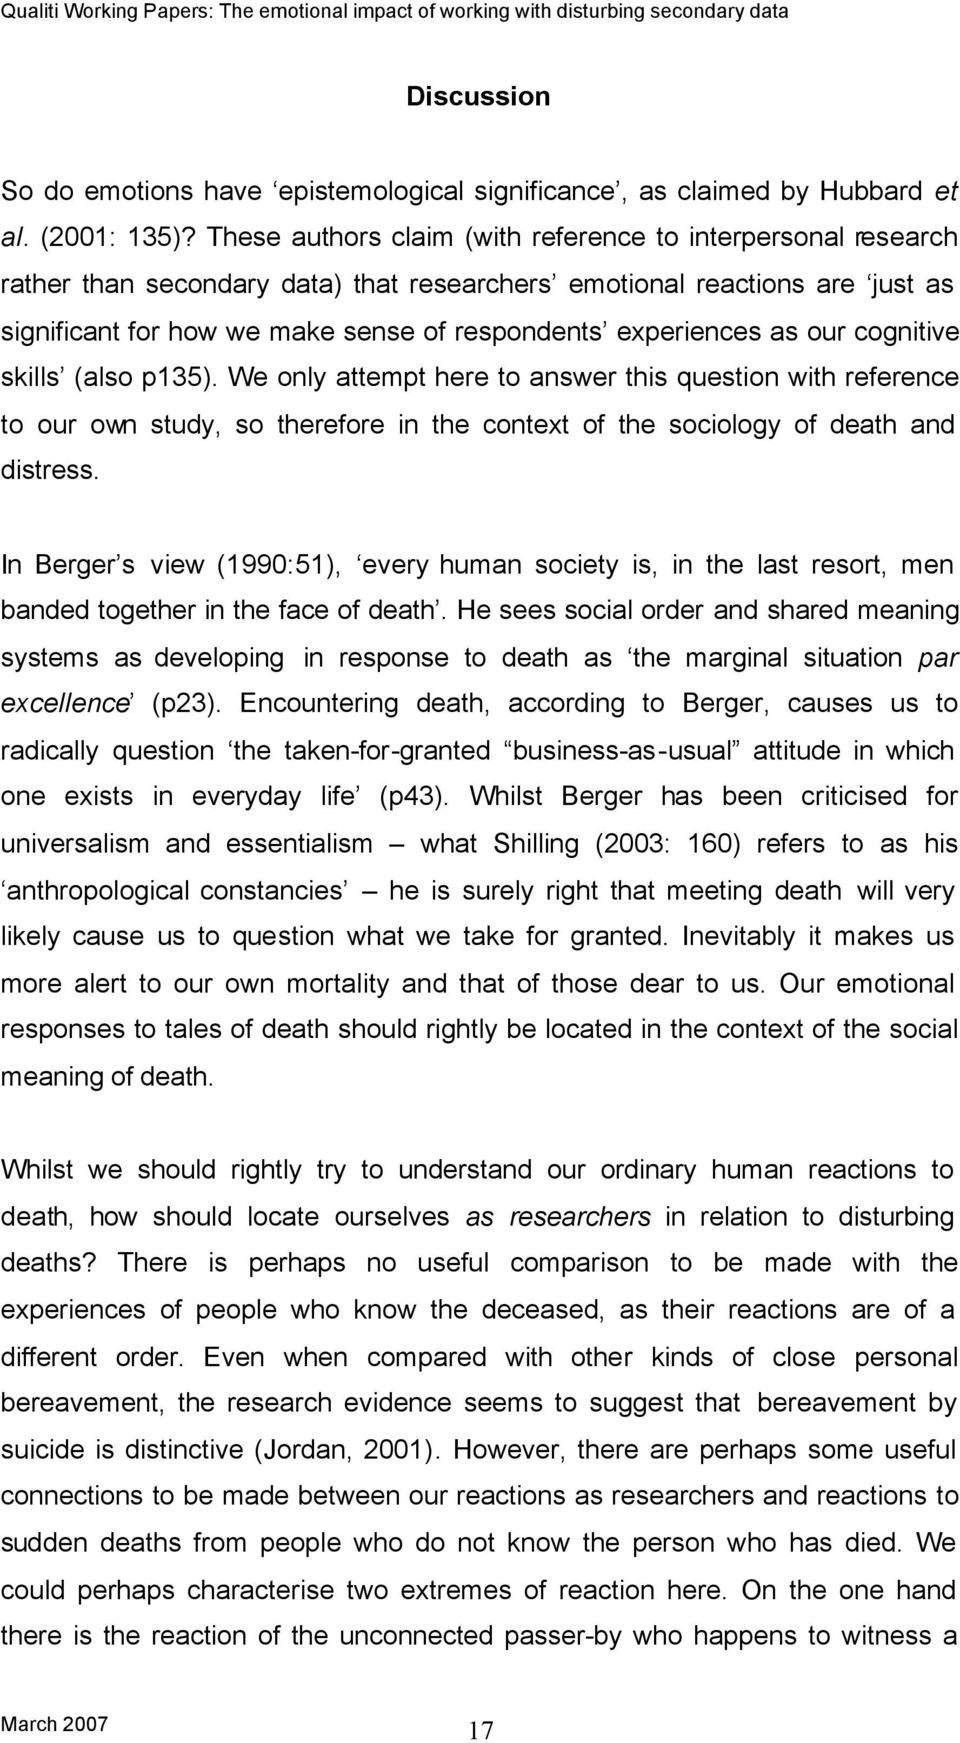 as our cognitive skills (also p135). We only attempt here to answer this question with reference to our own study, so therefore in the context of the sociology of death and distress.